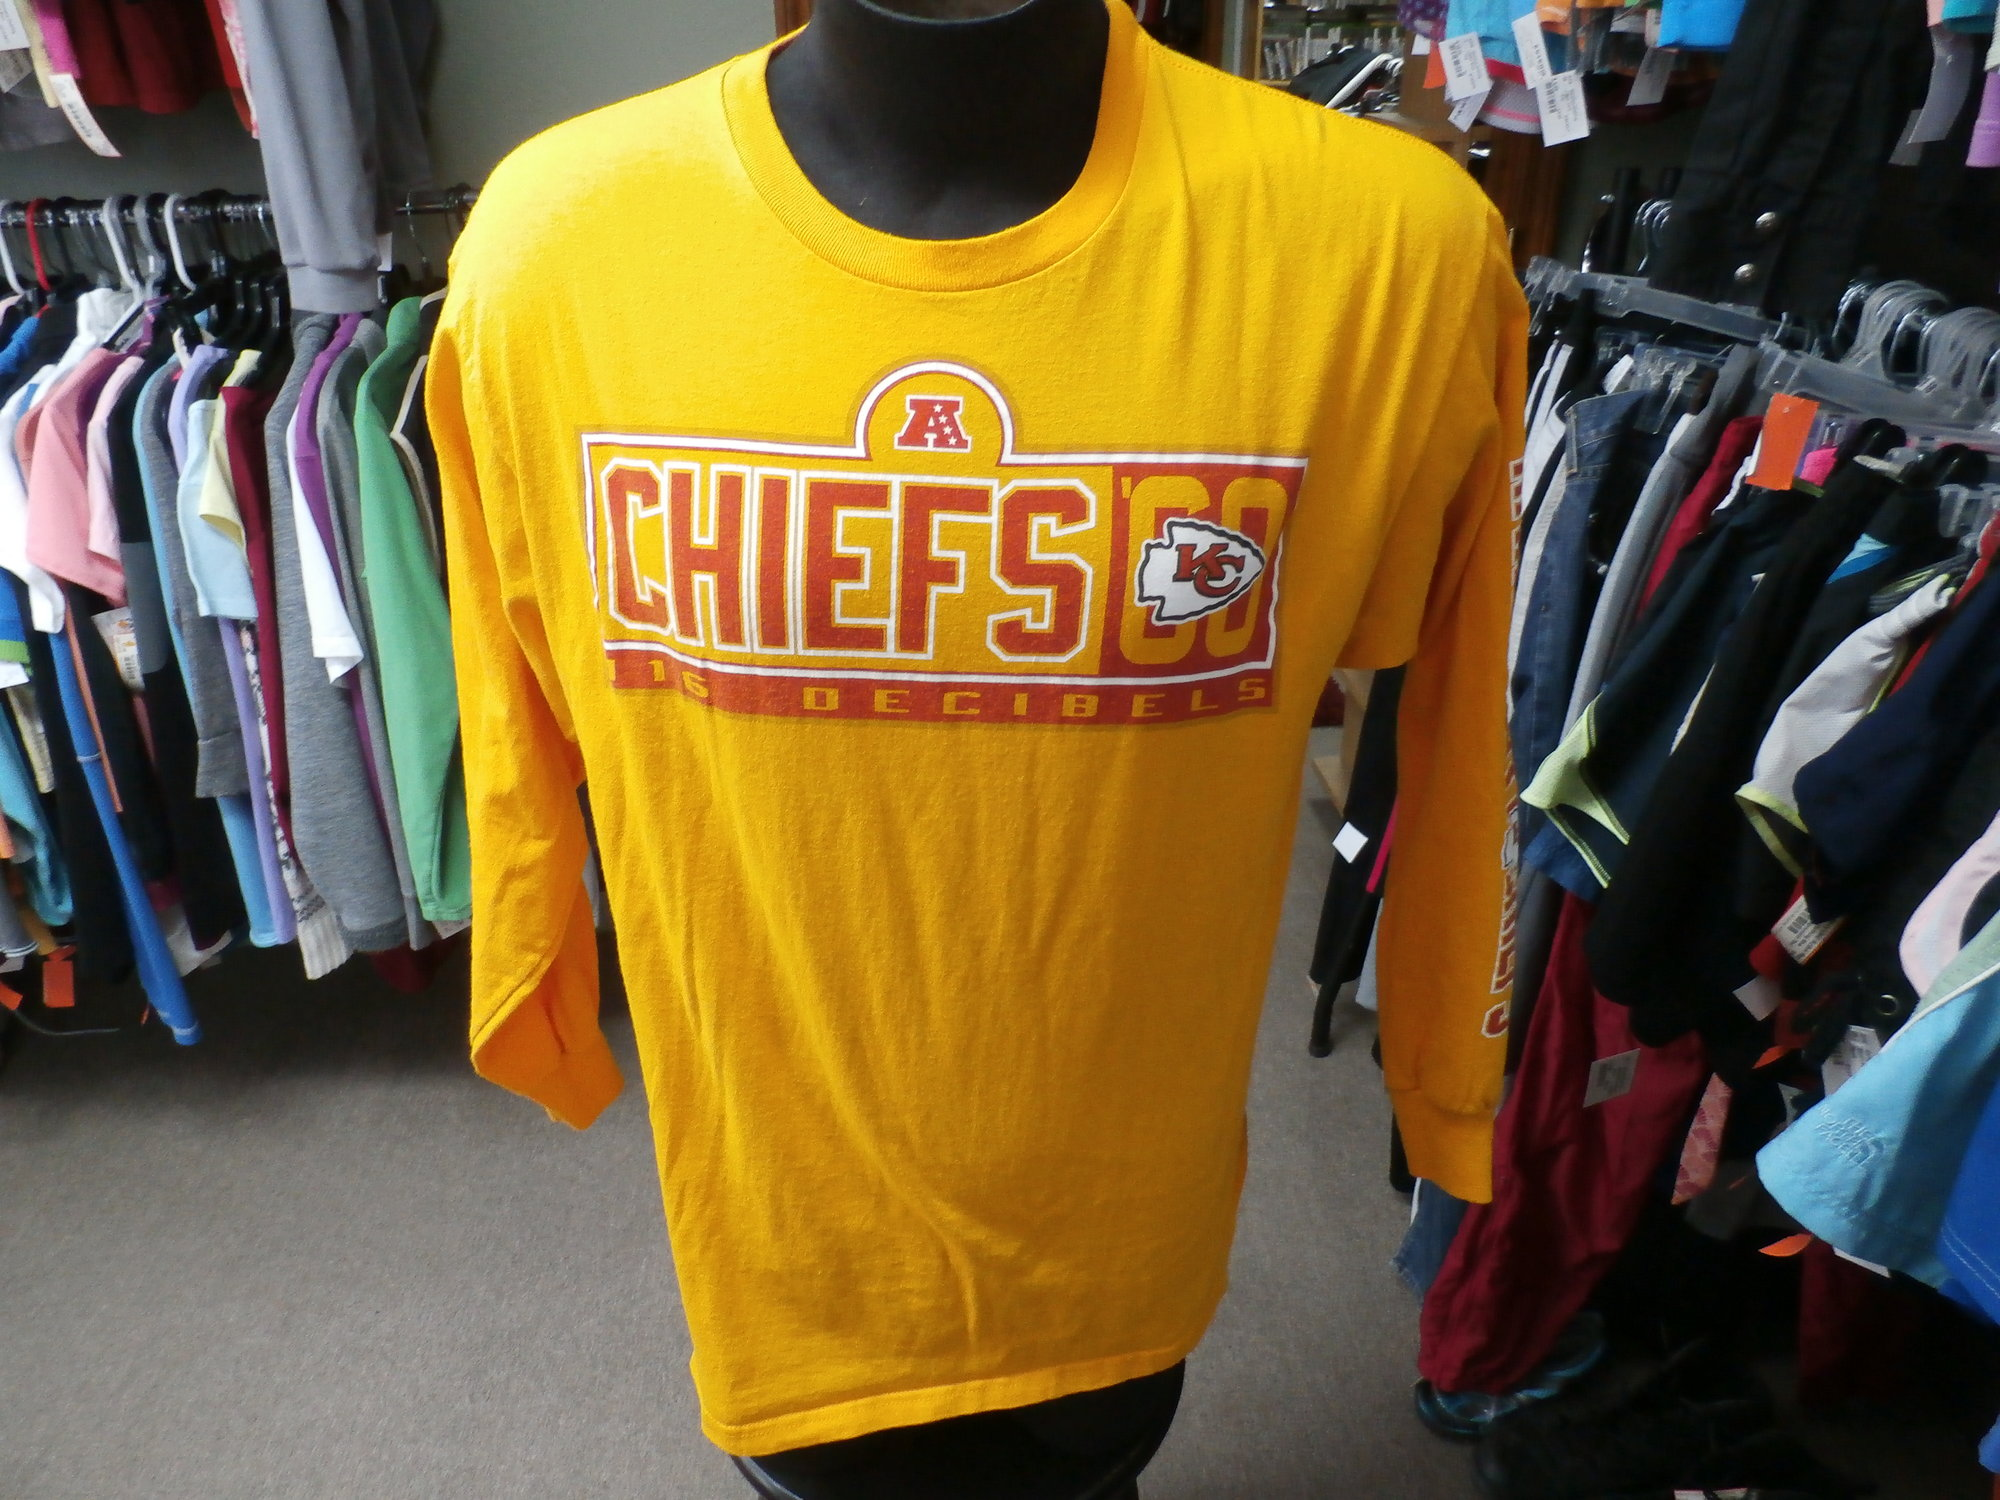 promo code defe7 aa7da KC Chiefs LS Shirt | Recycled ActiveWear ~ FREE SHIPPING USA ...